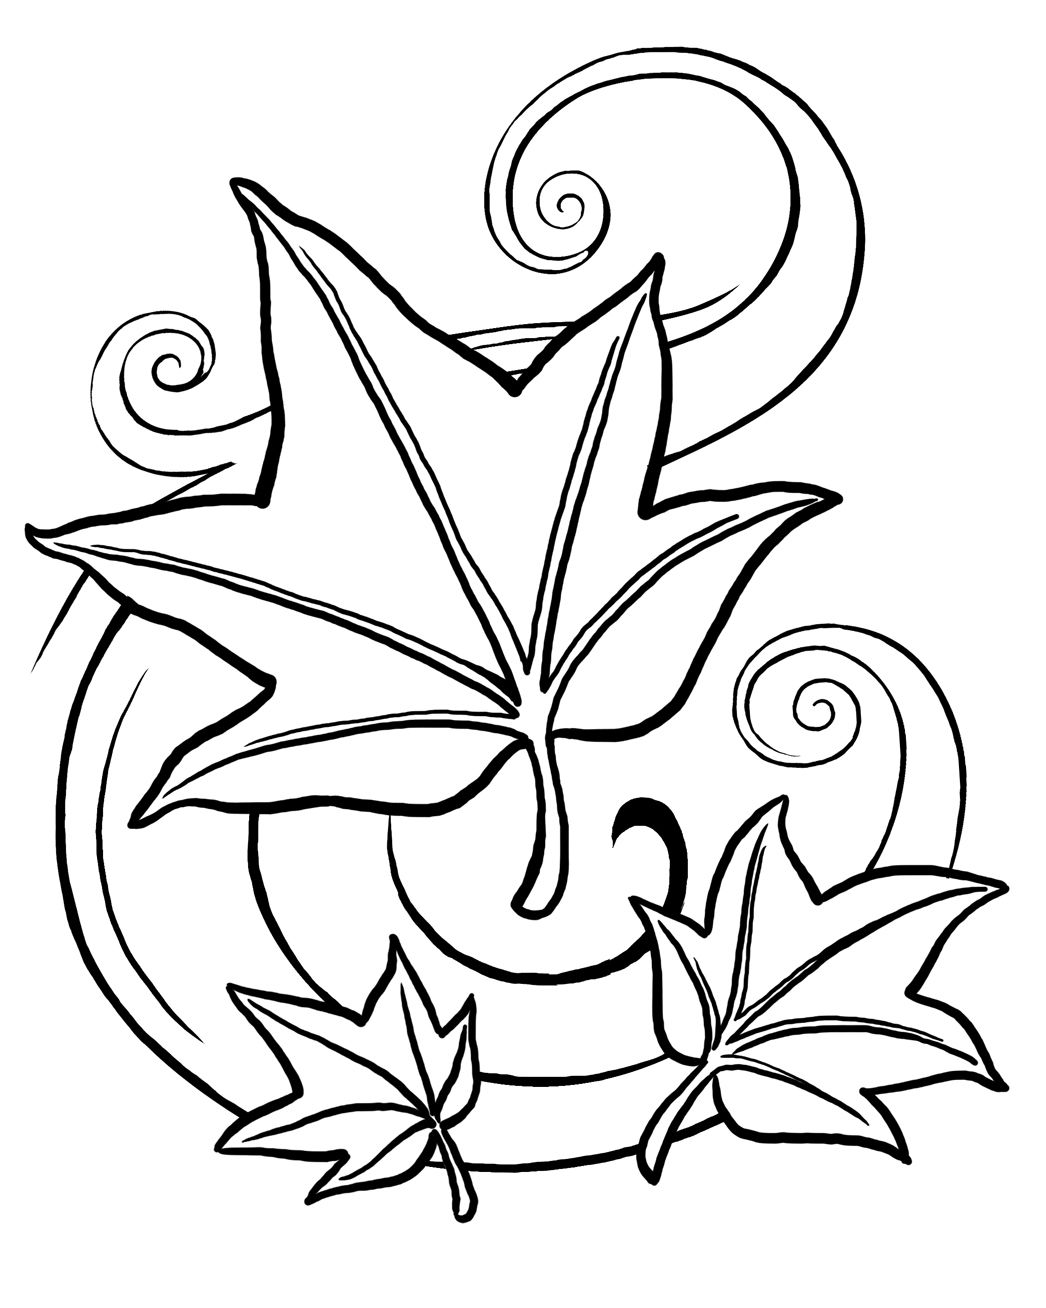 leaf coloring pages fall leaves coloring pages clipart panda free clipart leaf pages coloring